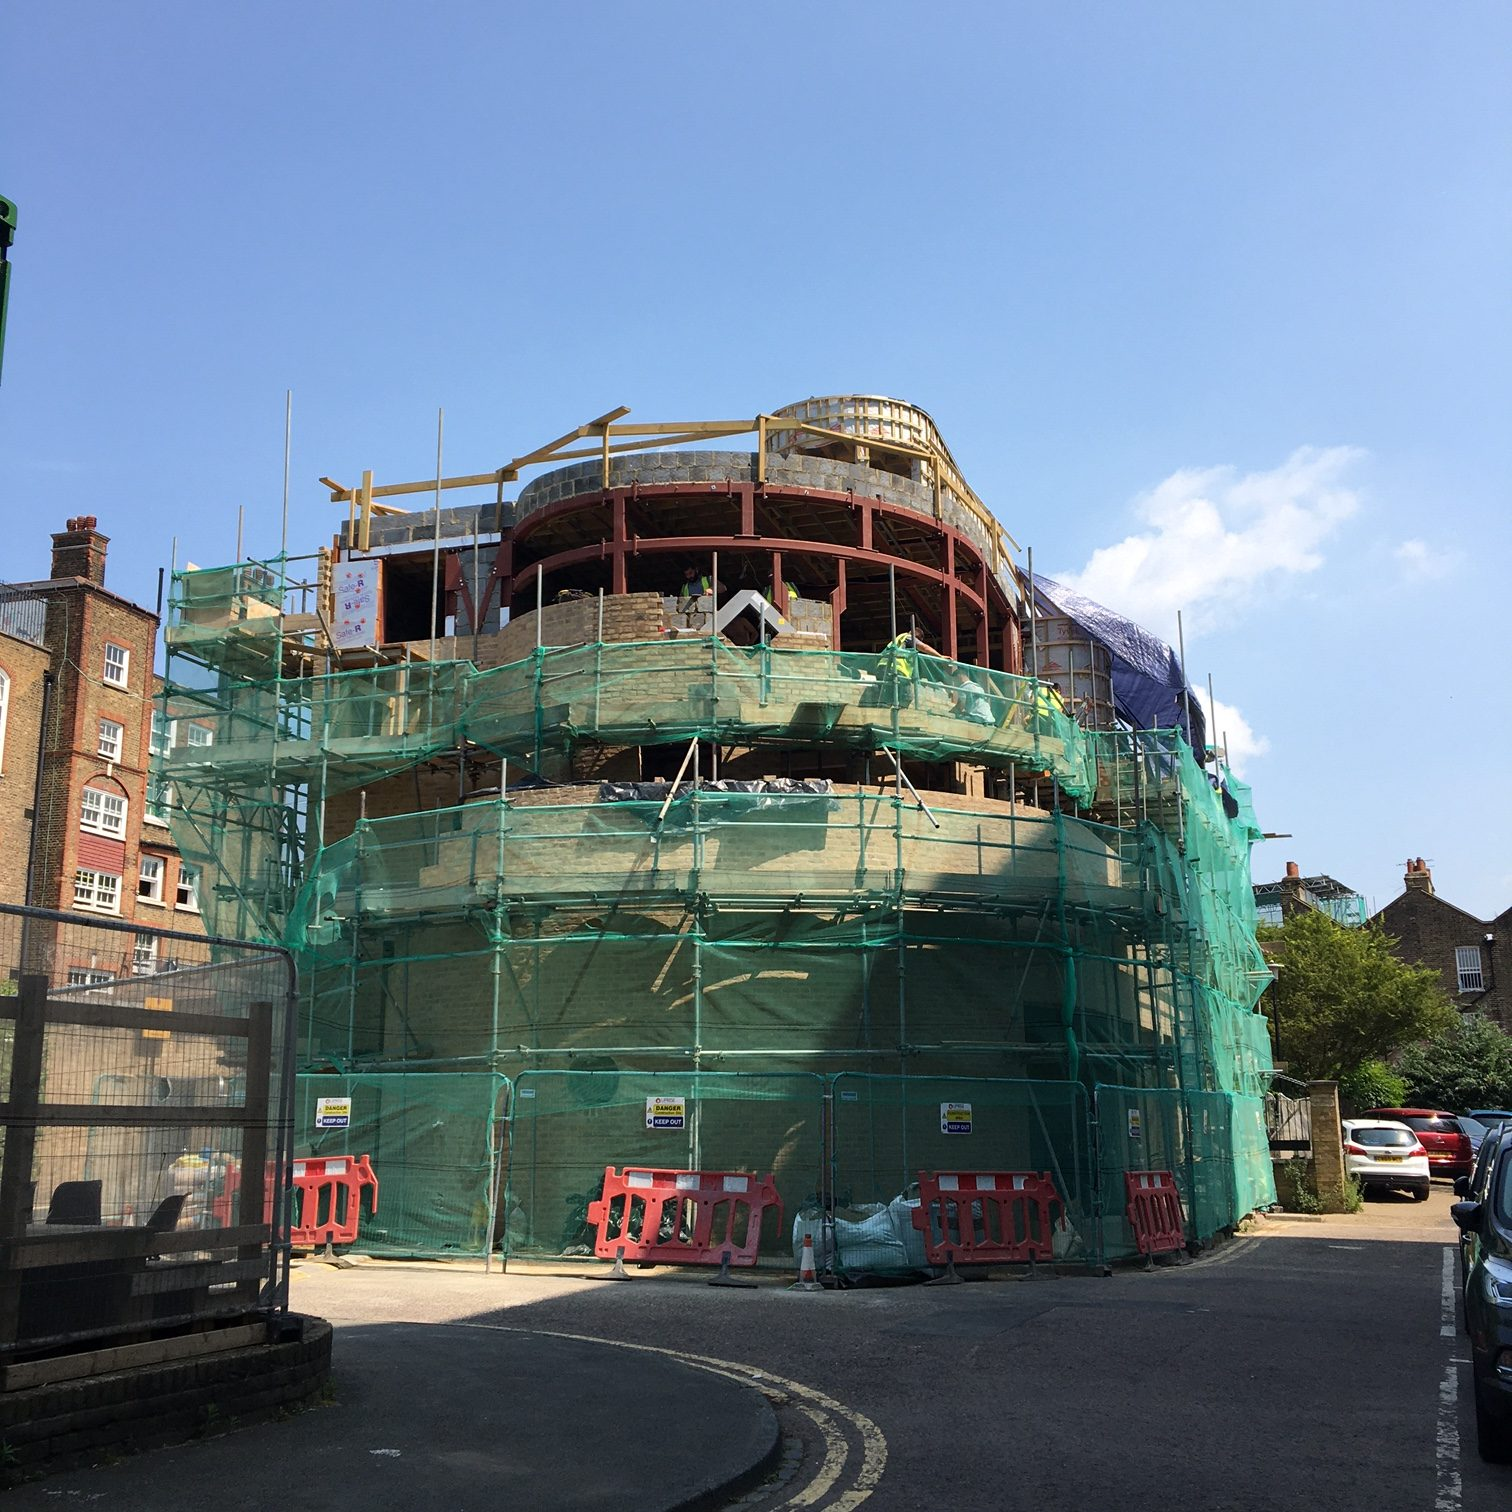 A view of the west side of the building with brickwork up to the second floor, with some windows in place. The red steel structure can still be seen on the third floor. A small curved room can be seen right a tthe top. The whole building is surrounded by scaffolding and green mesh. It's starting to look very impressive.